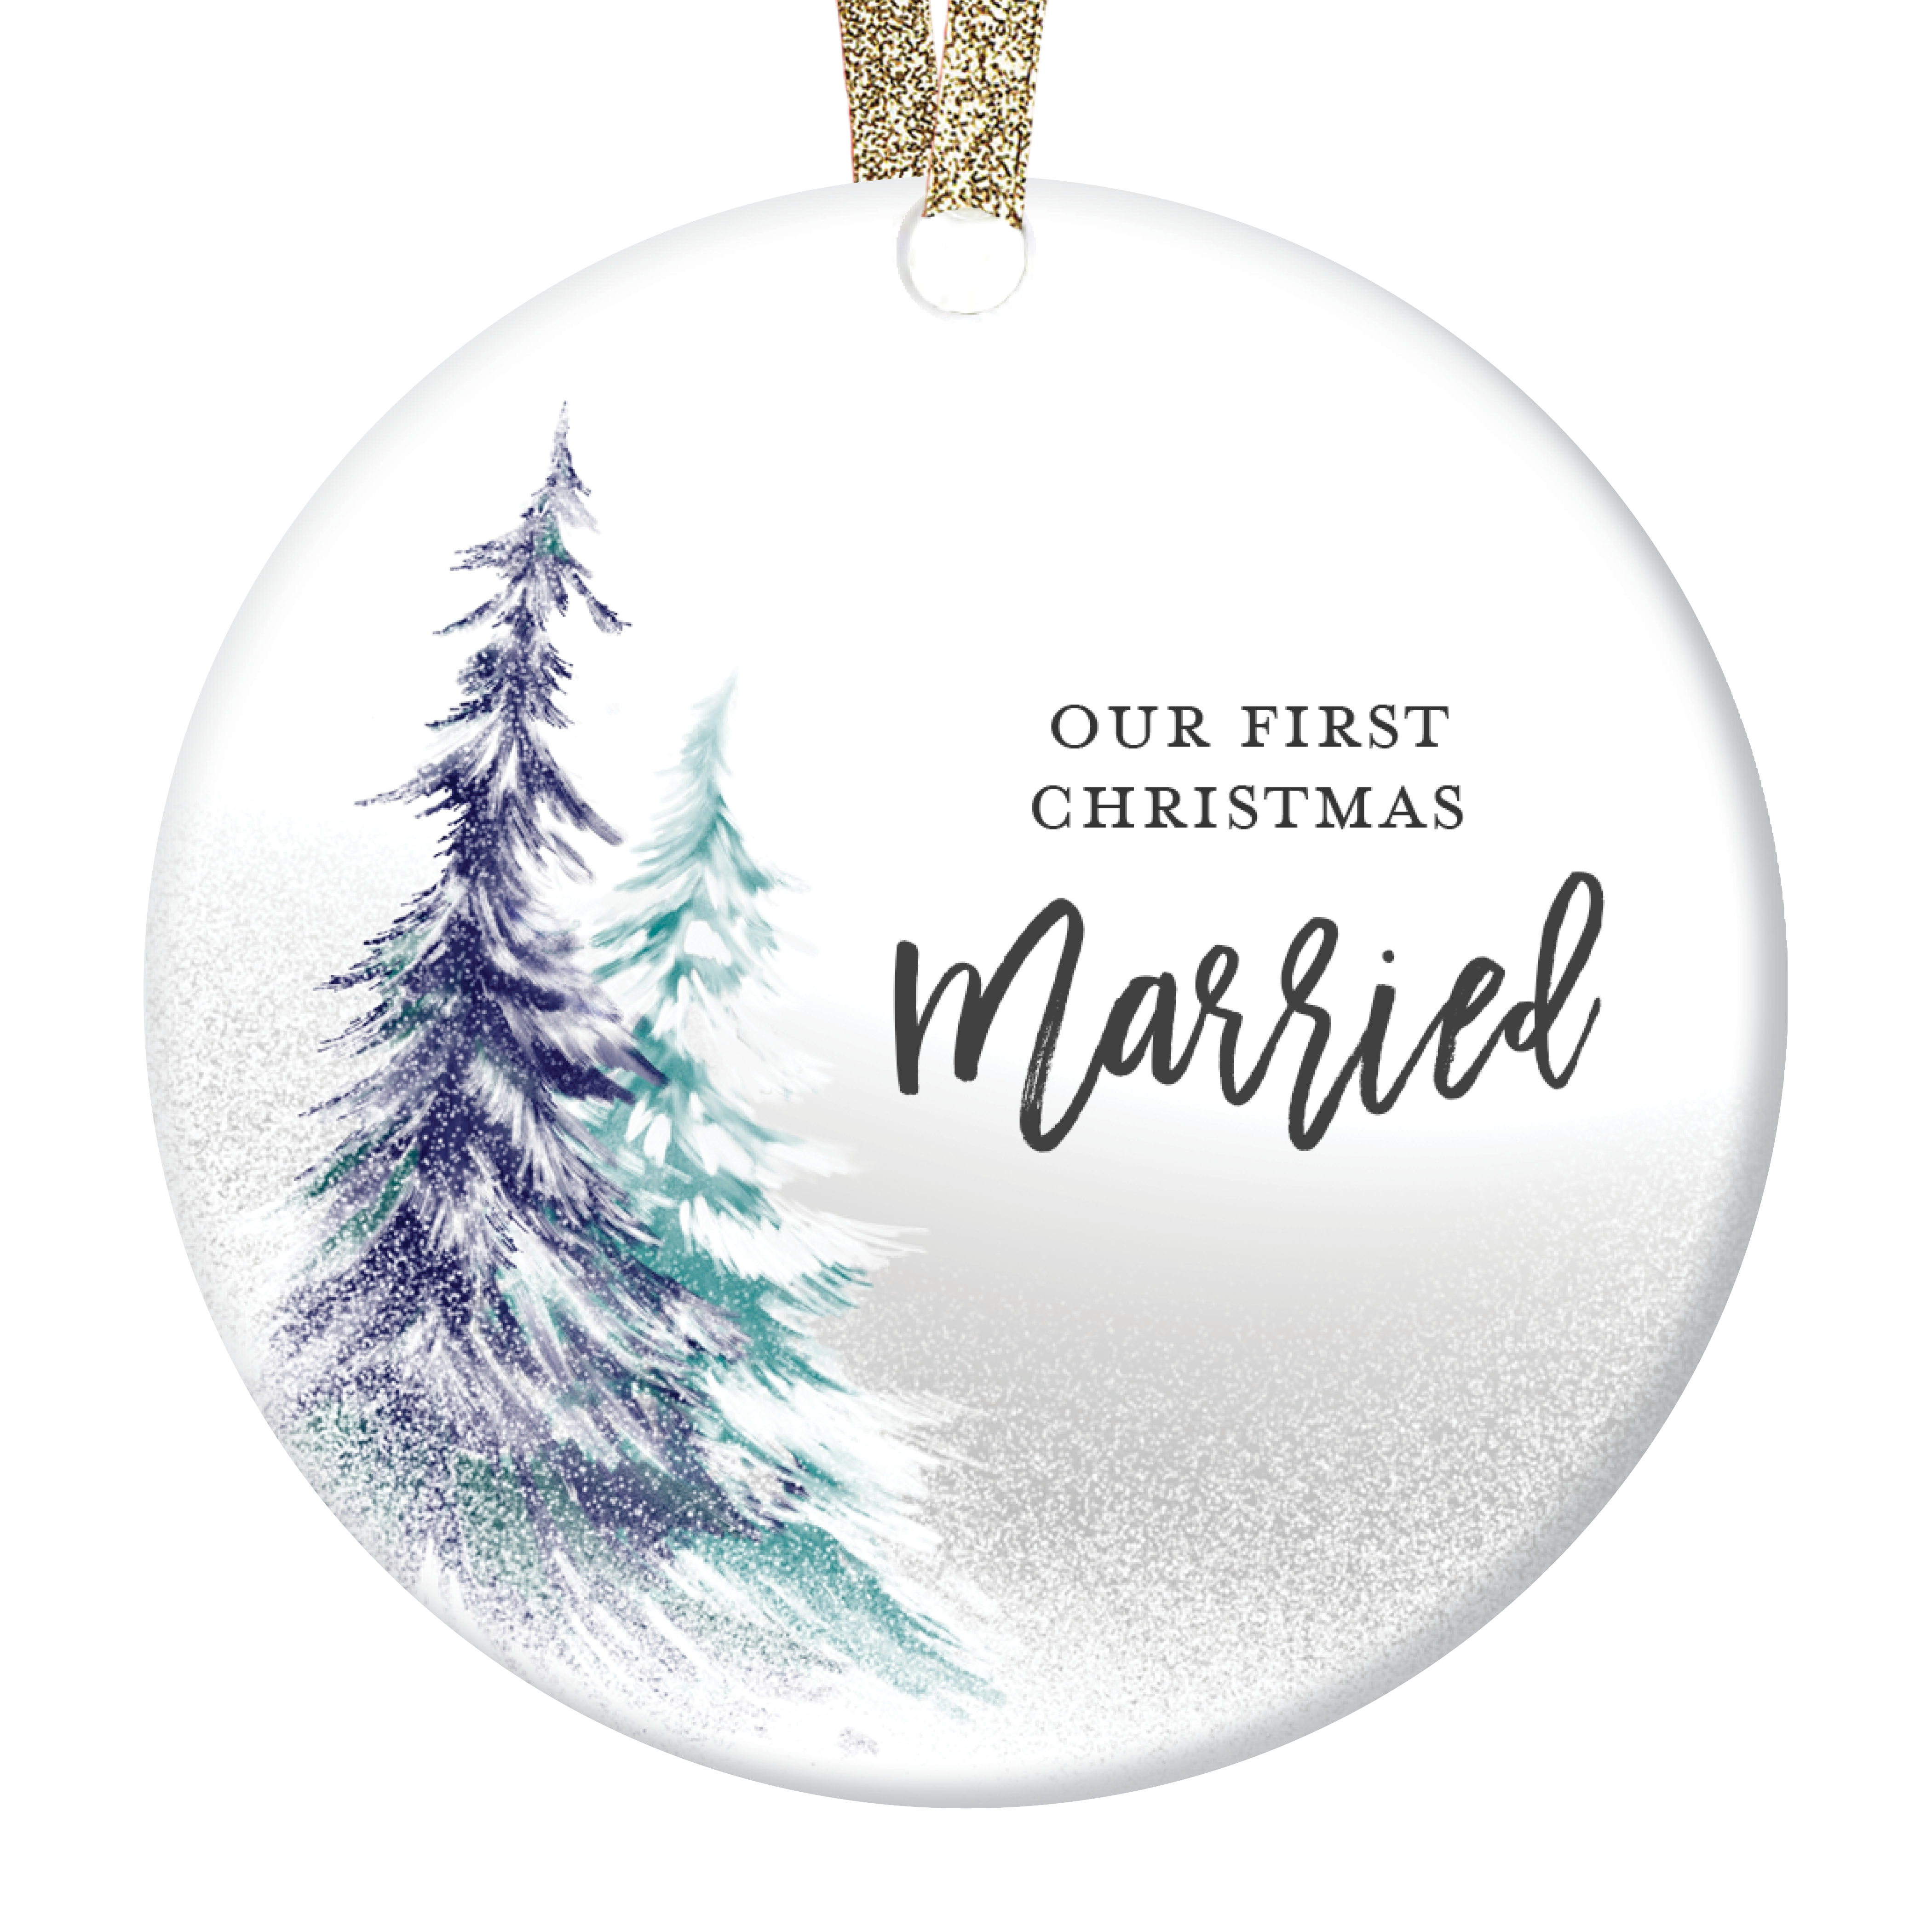 Ornament Gift For Married Couple Wedding Gift Bridal Shower Gifts Gift For Couple Personalized Porcelain Ceramic Christmas Ornament